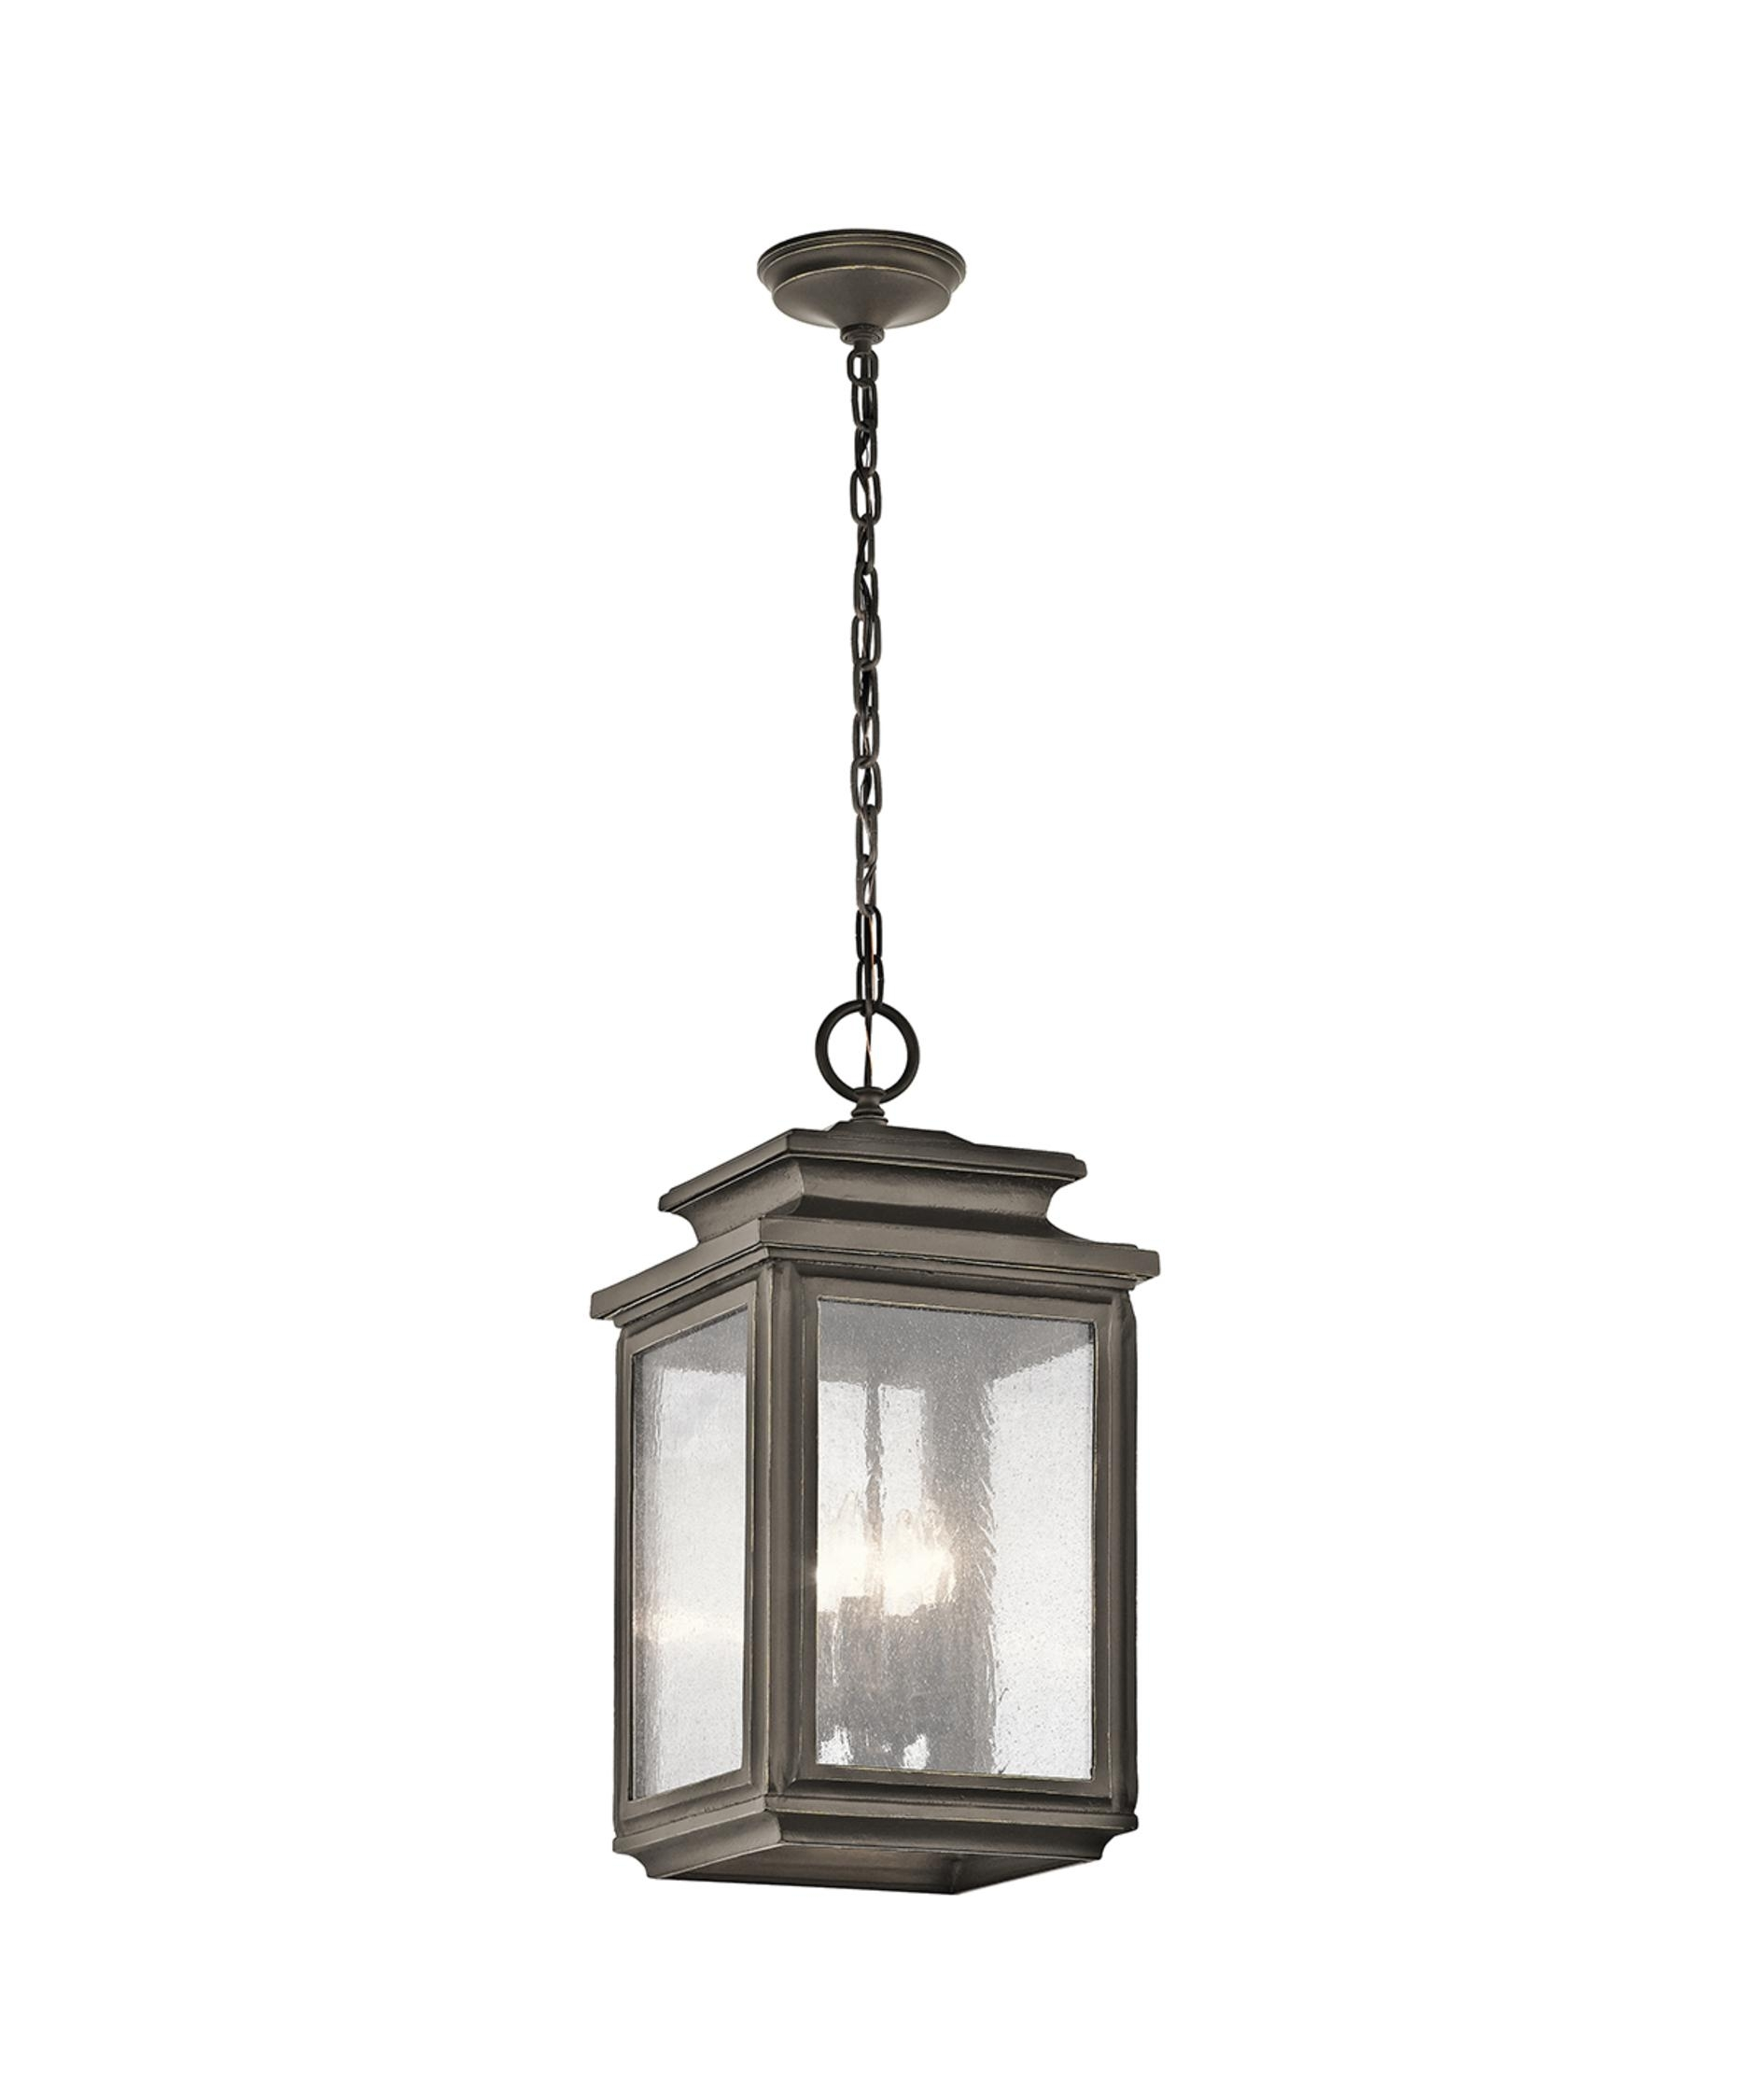 Kichler 49505 Wiscombe Park 11 Inch Wide 4 Light Outdoor Hanging within Italian Outdoor Lanterns (Image 10 of 20)